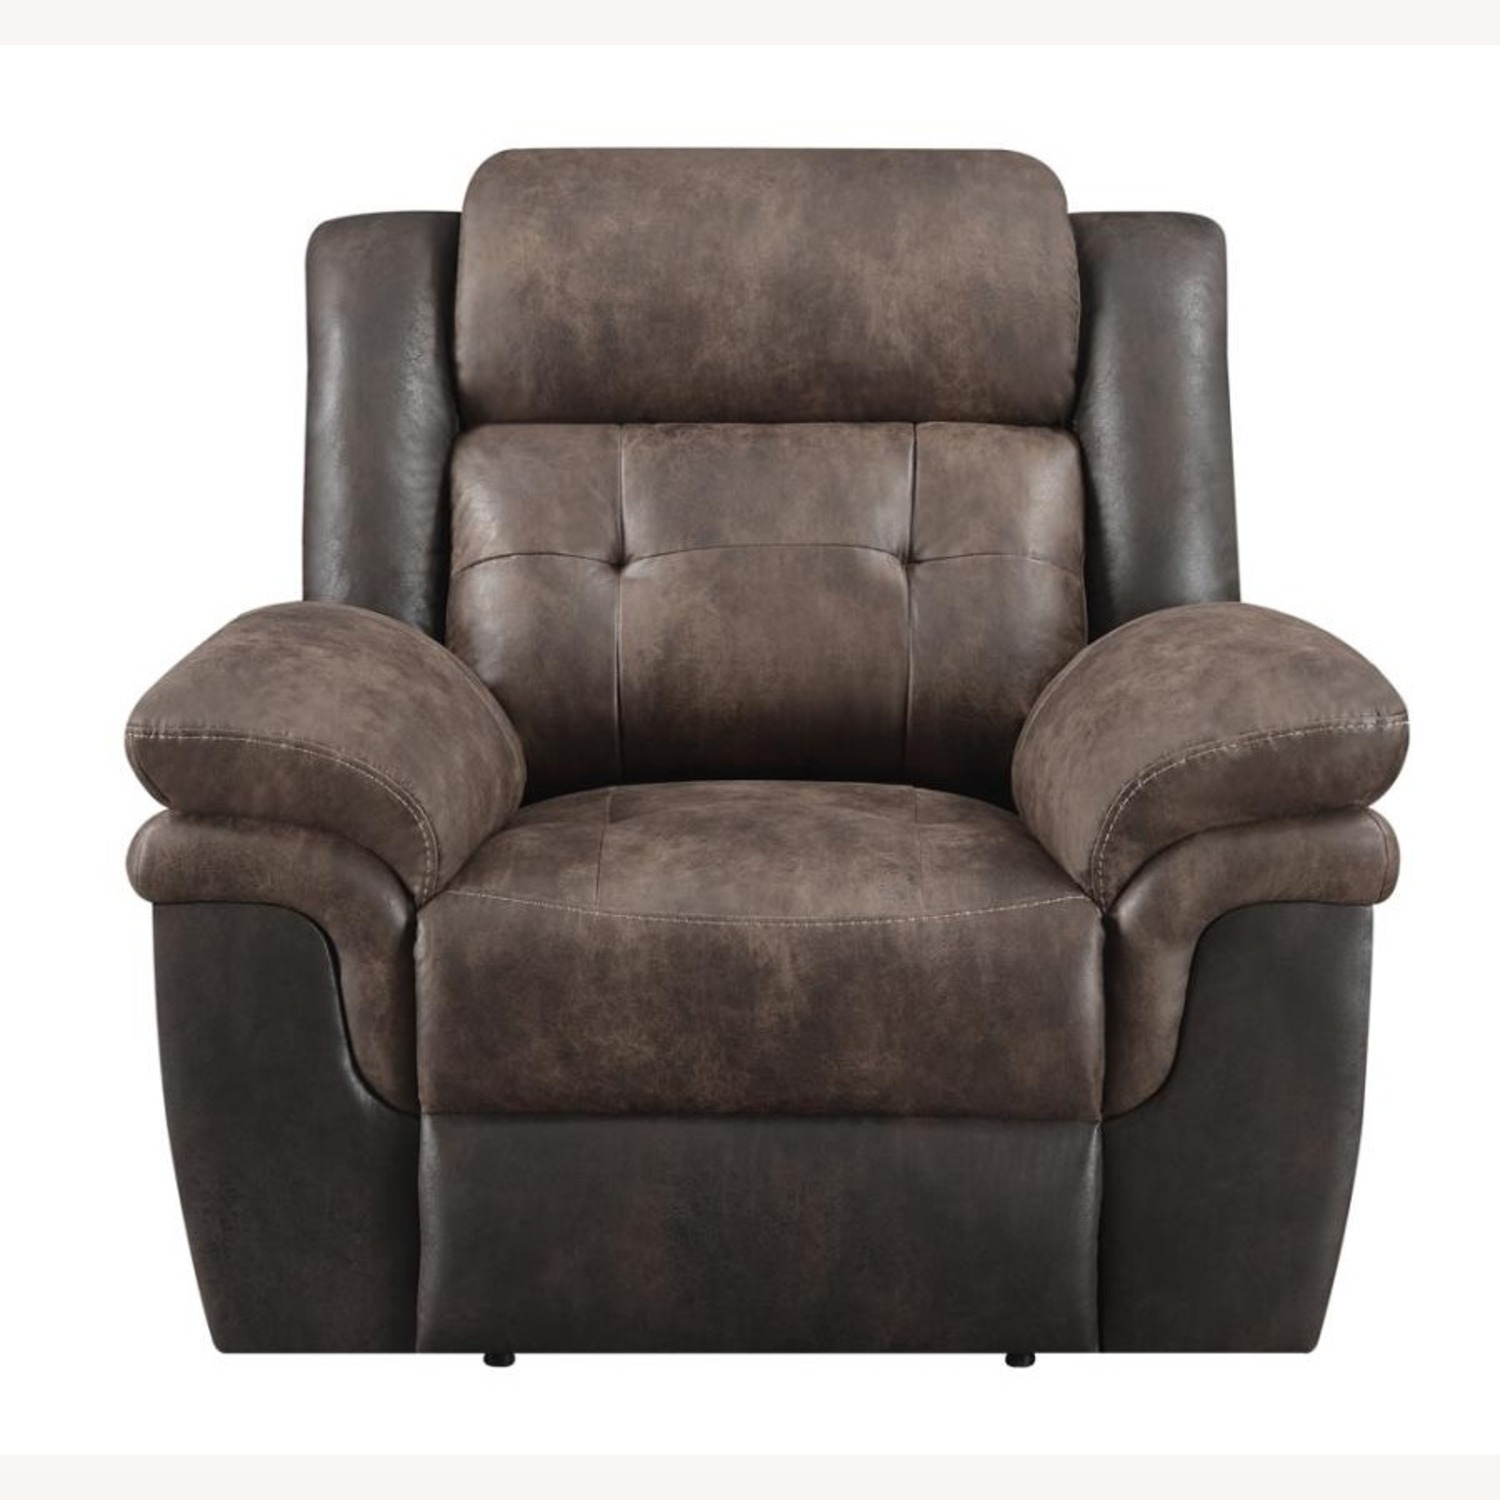 Recliner In Chocolate & Dark Brown Upholstery - image-2